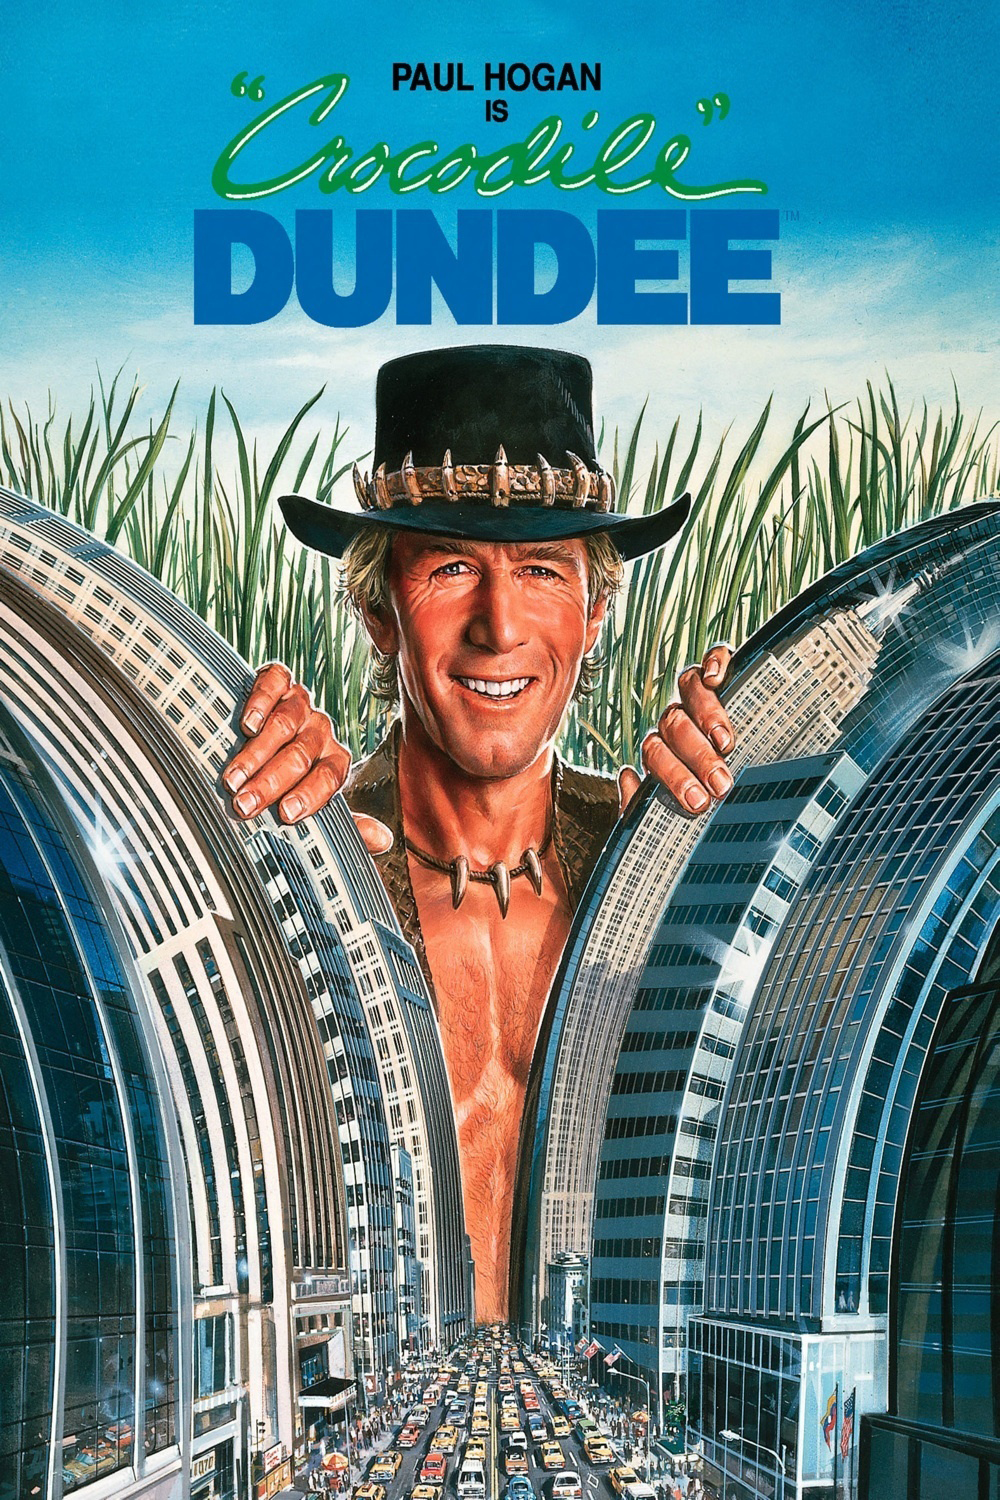 Movie poster for Crocodile Dundee